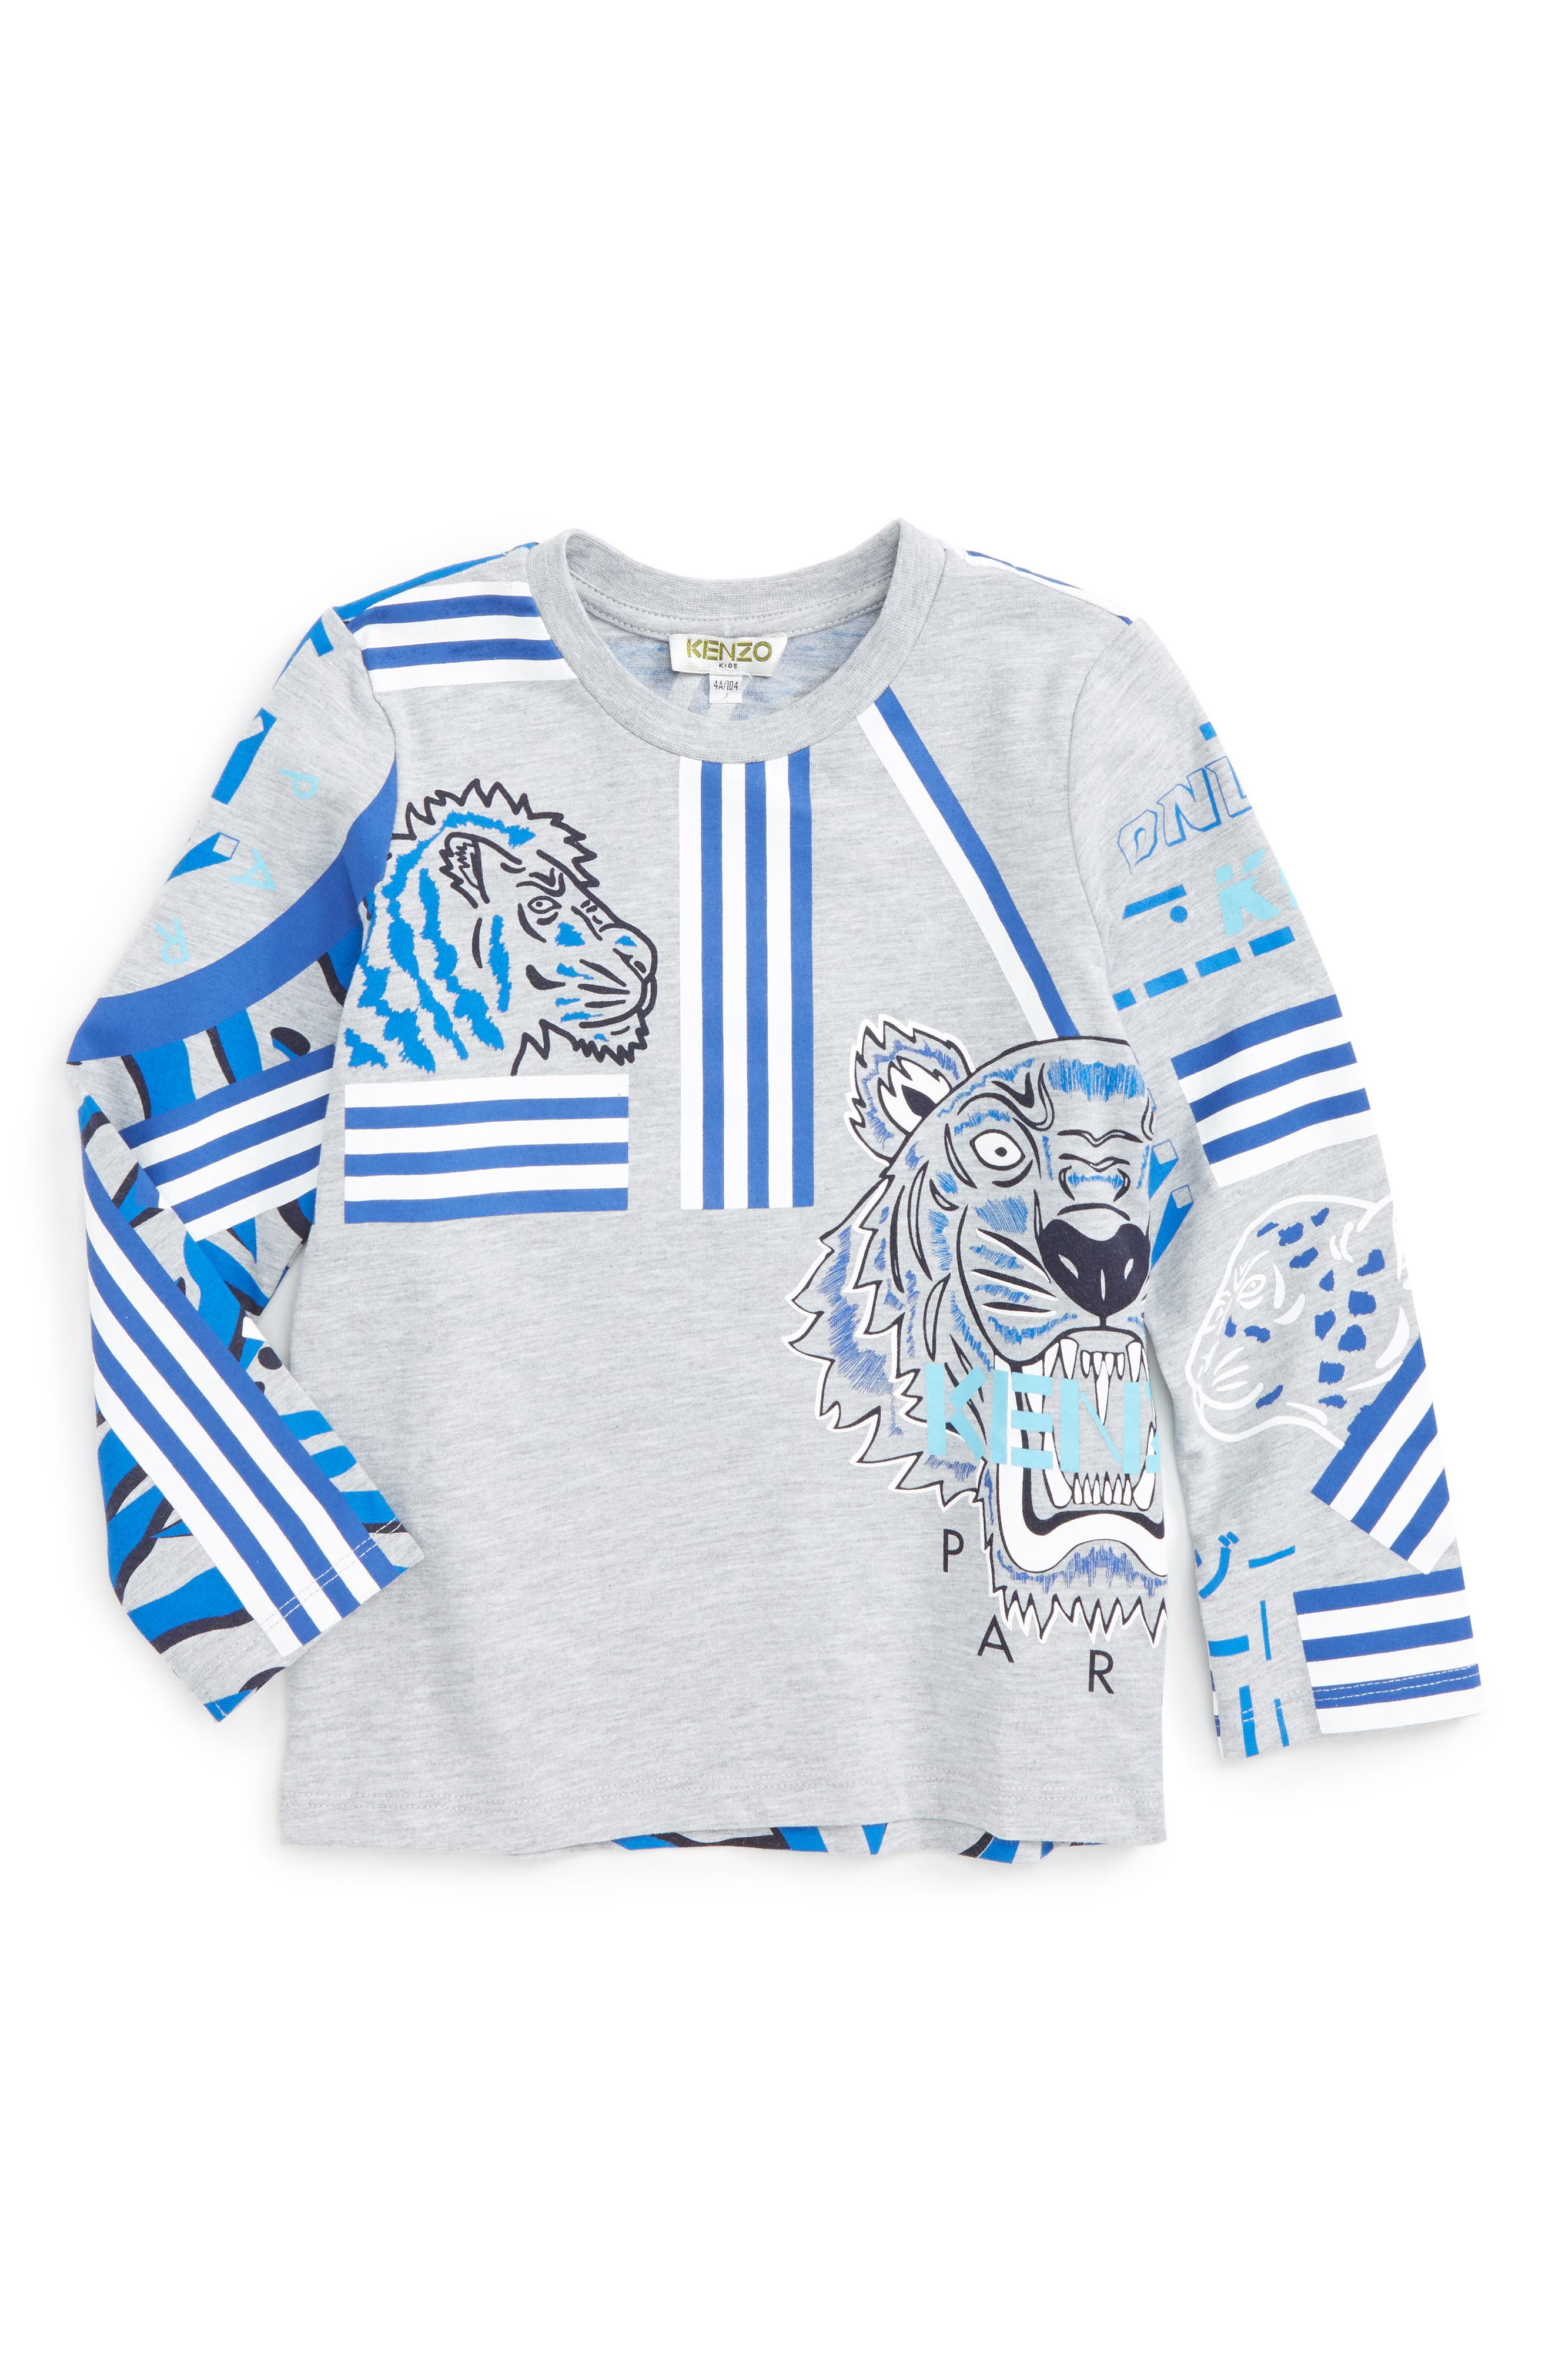 Main Image - KENZO Tiger Graphic T-Shirt (Toddler Boys, Little Boys & Big Boys)